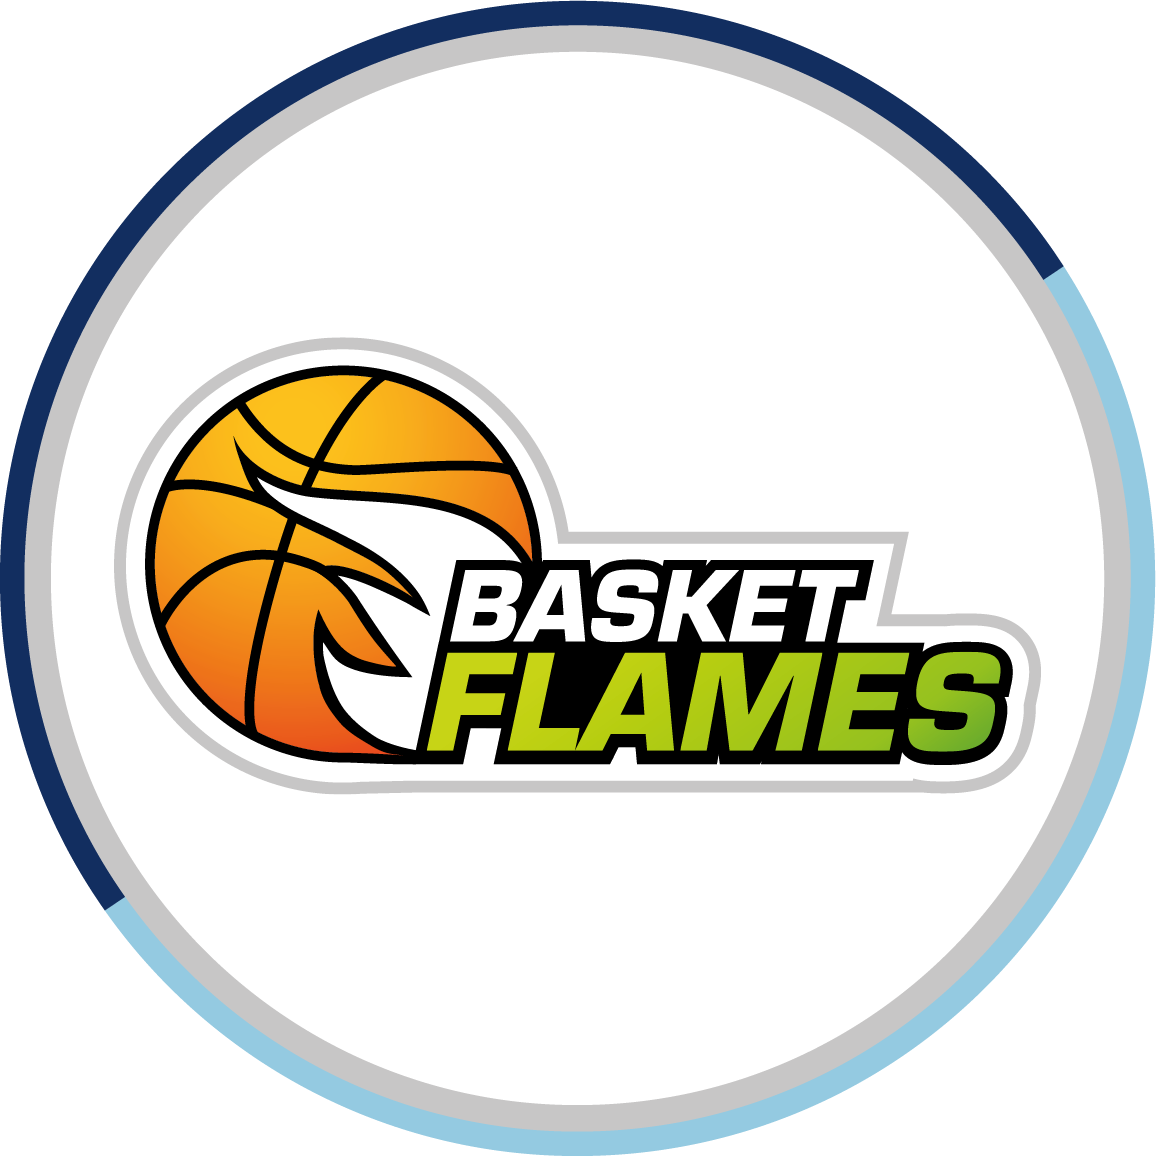 Basket Flames